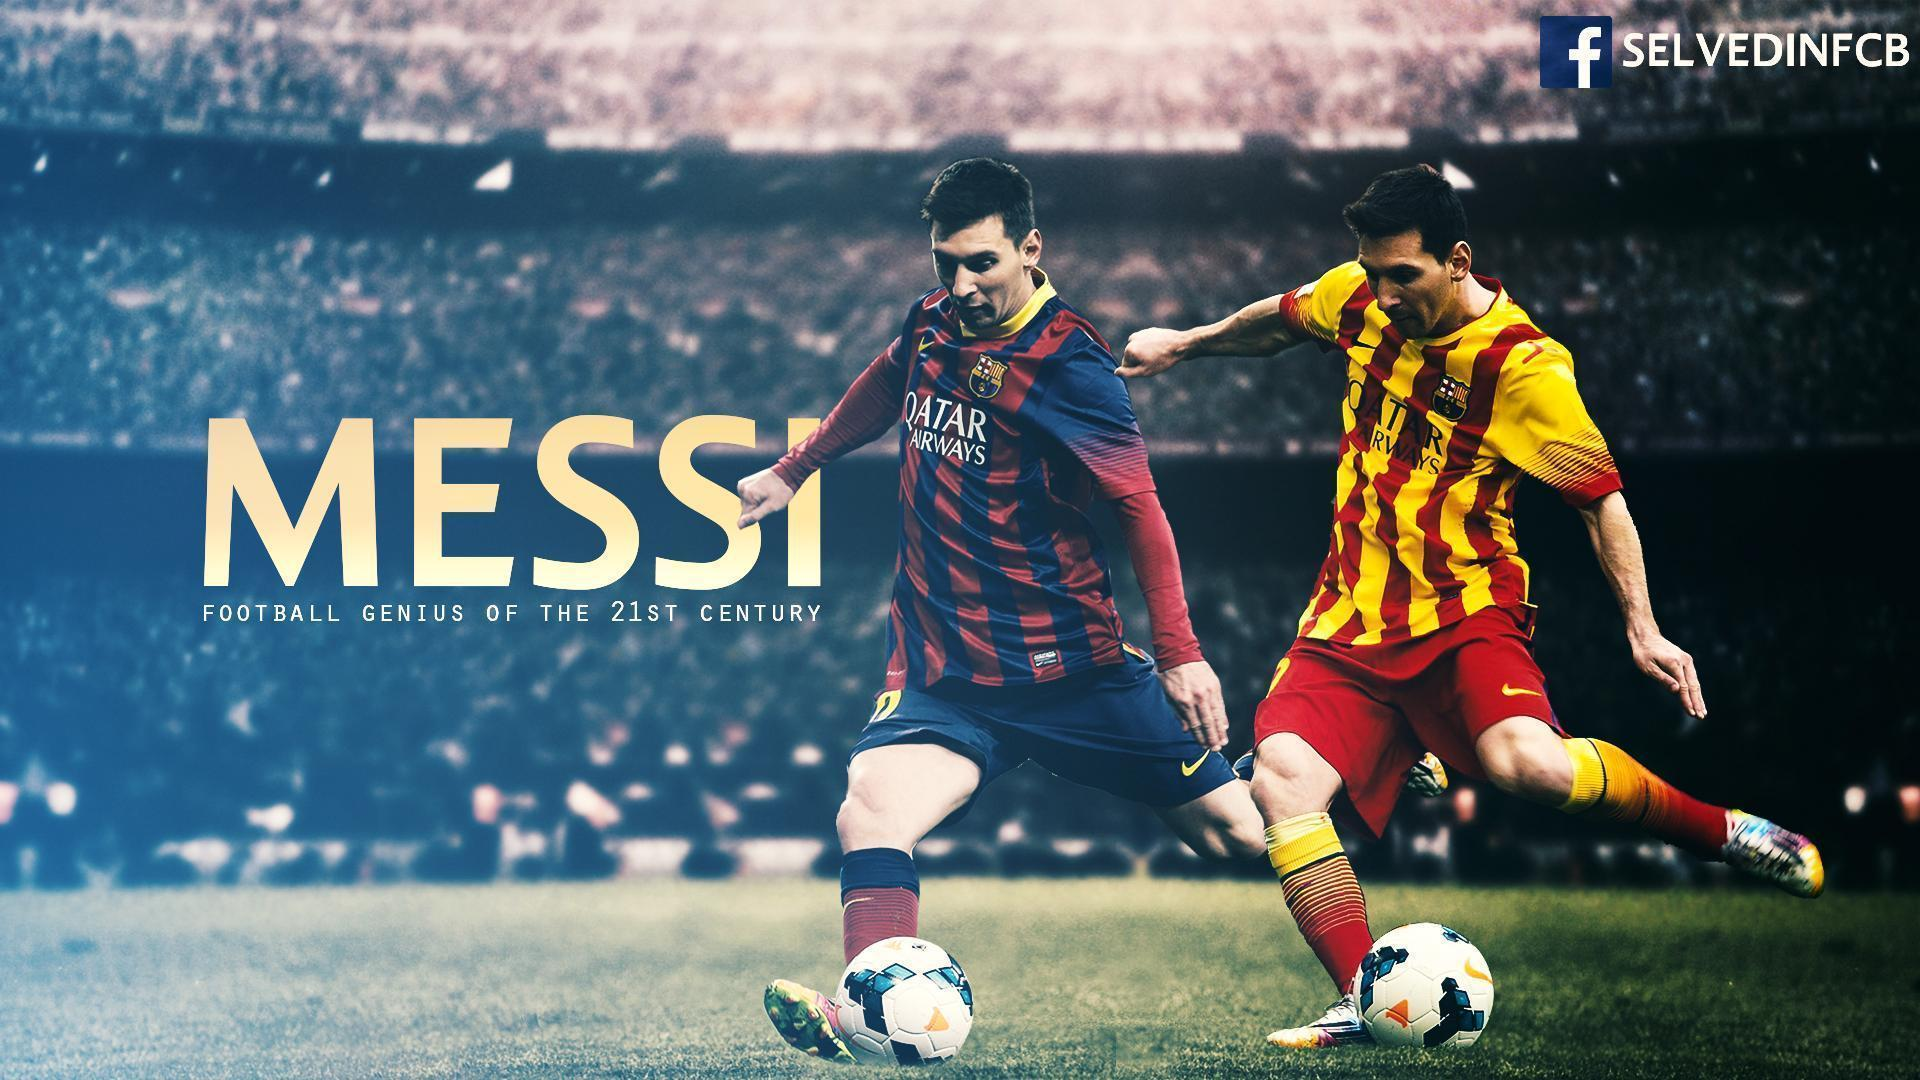 Lionel Messi Wallpaper HD Wallpapers Pulse